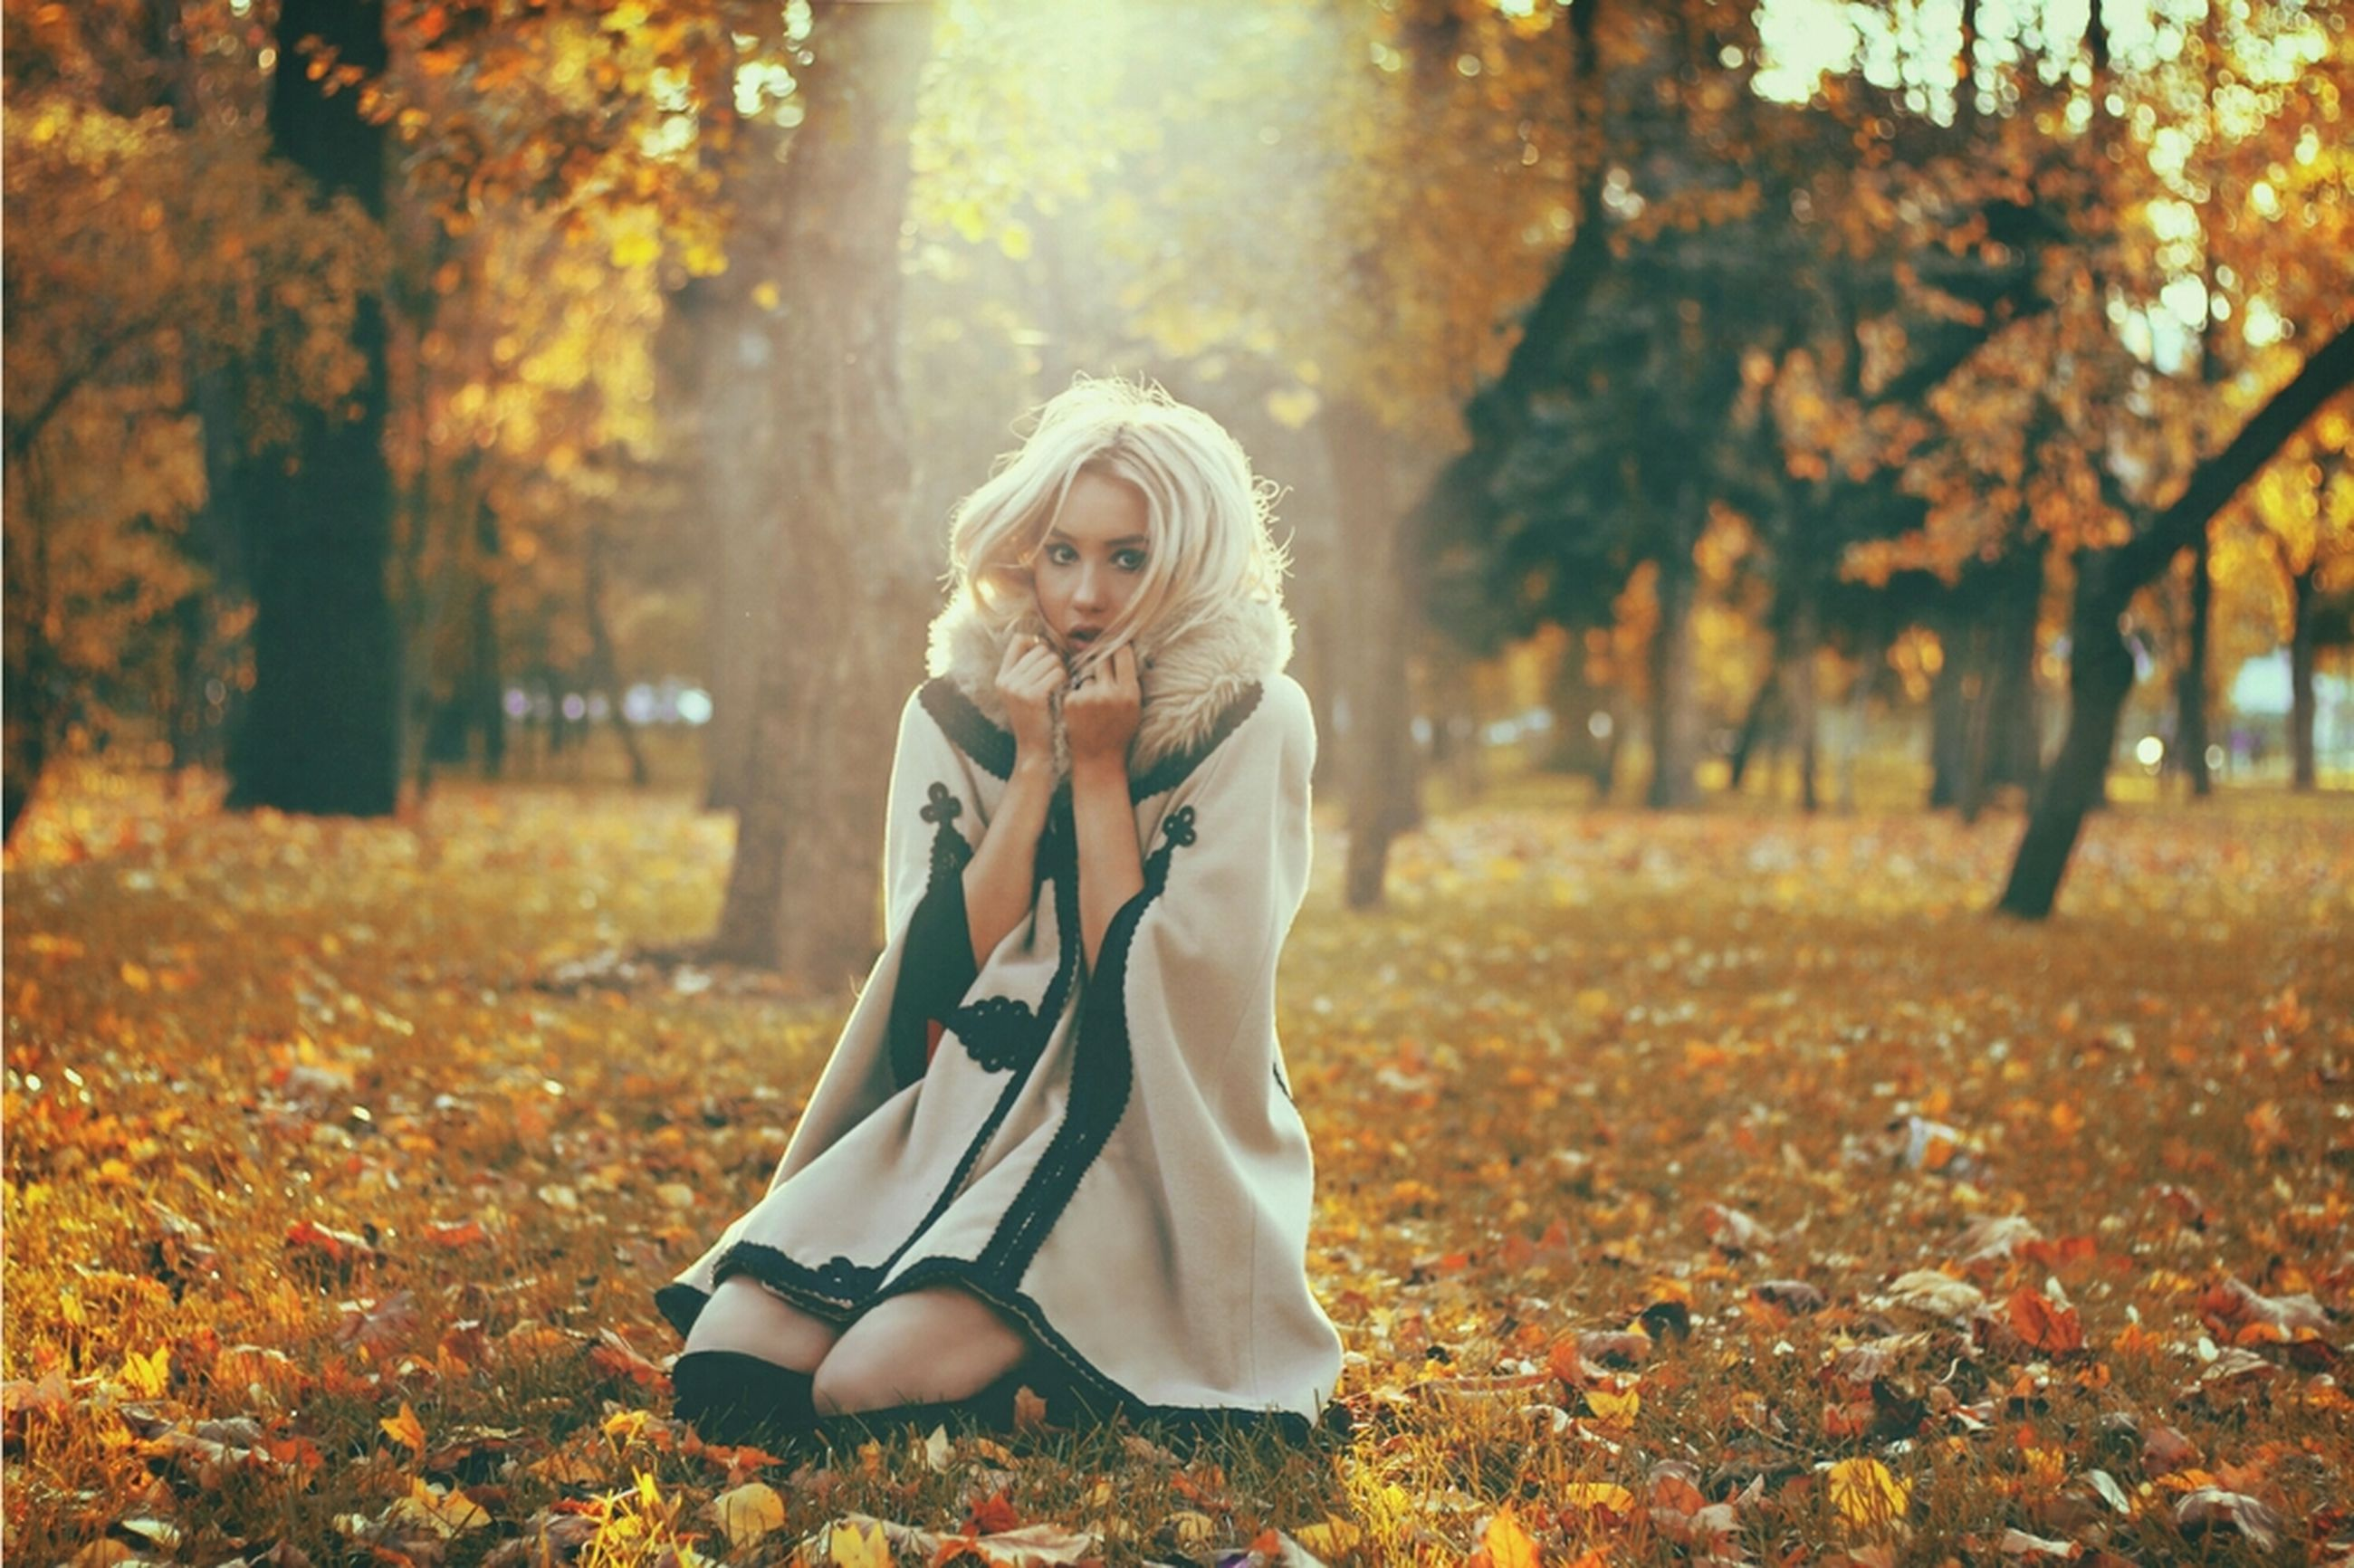 person, young adult, lifestyles, casual clothing, tree, leisure activity, autumn, young women, standing, park - man made space, front view, looking at camera, portrait, smiling, focus on foreground, season, field, three quarter length